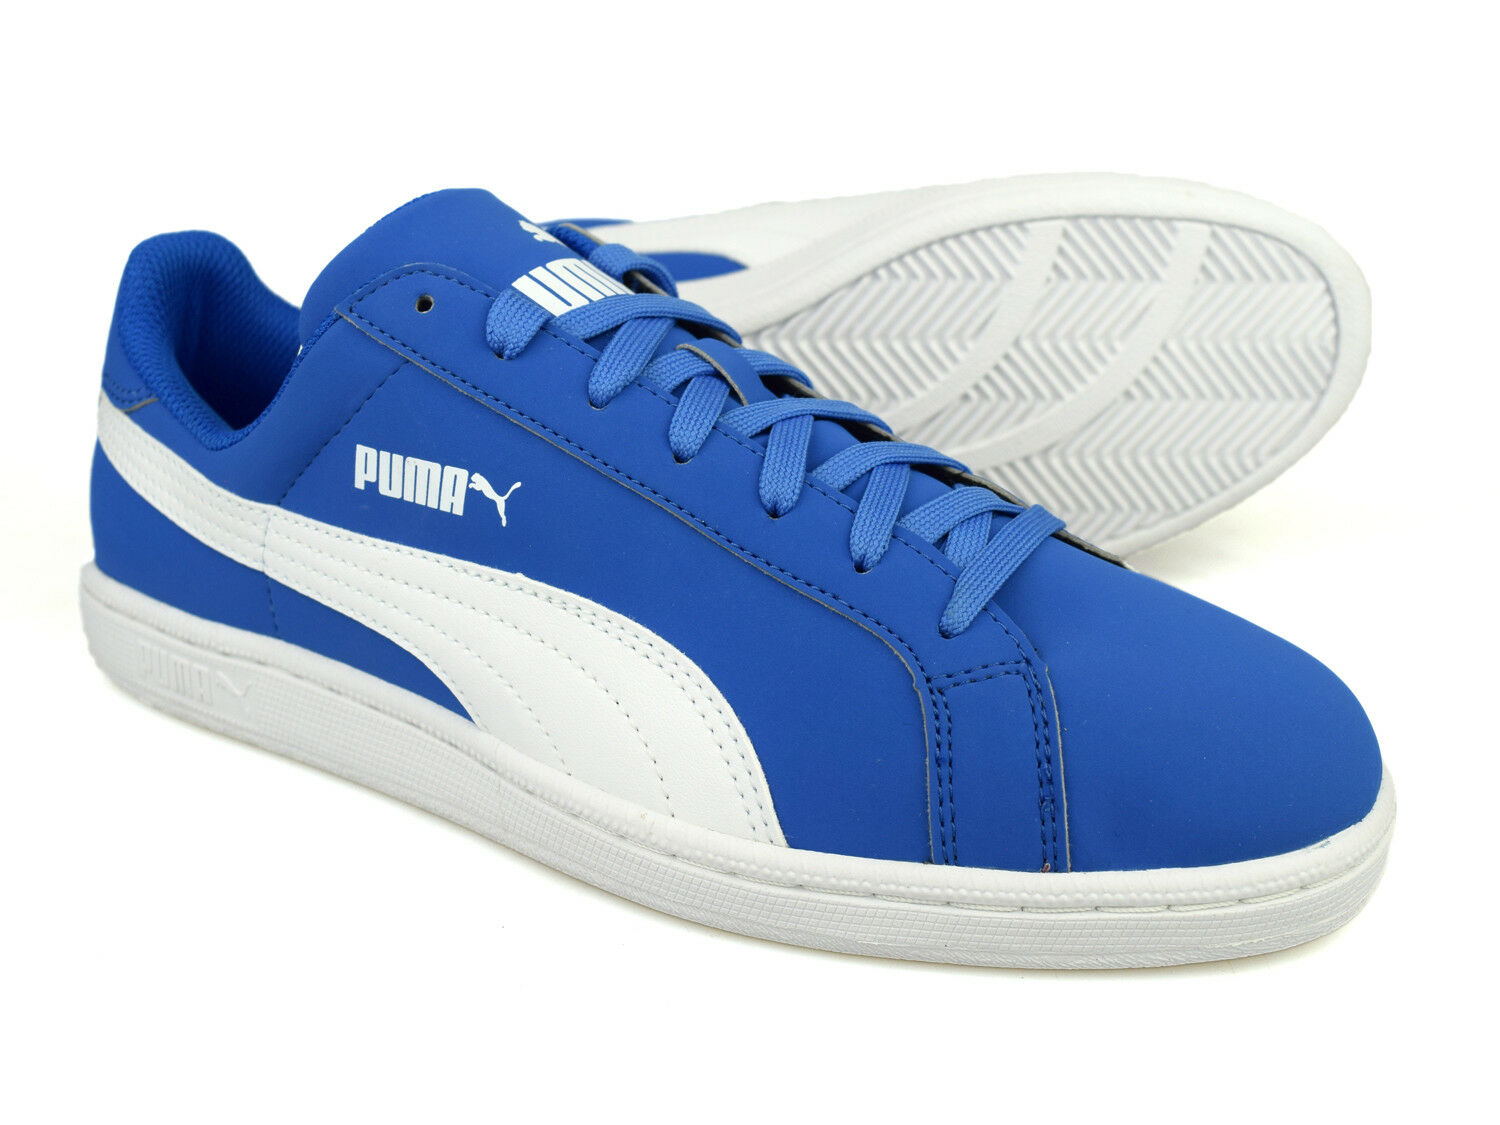 Puma Smash Buck Blue Adult Low-Top Casual Sports Trainers 356753-09